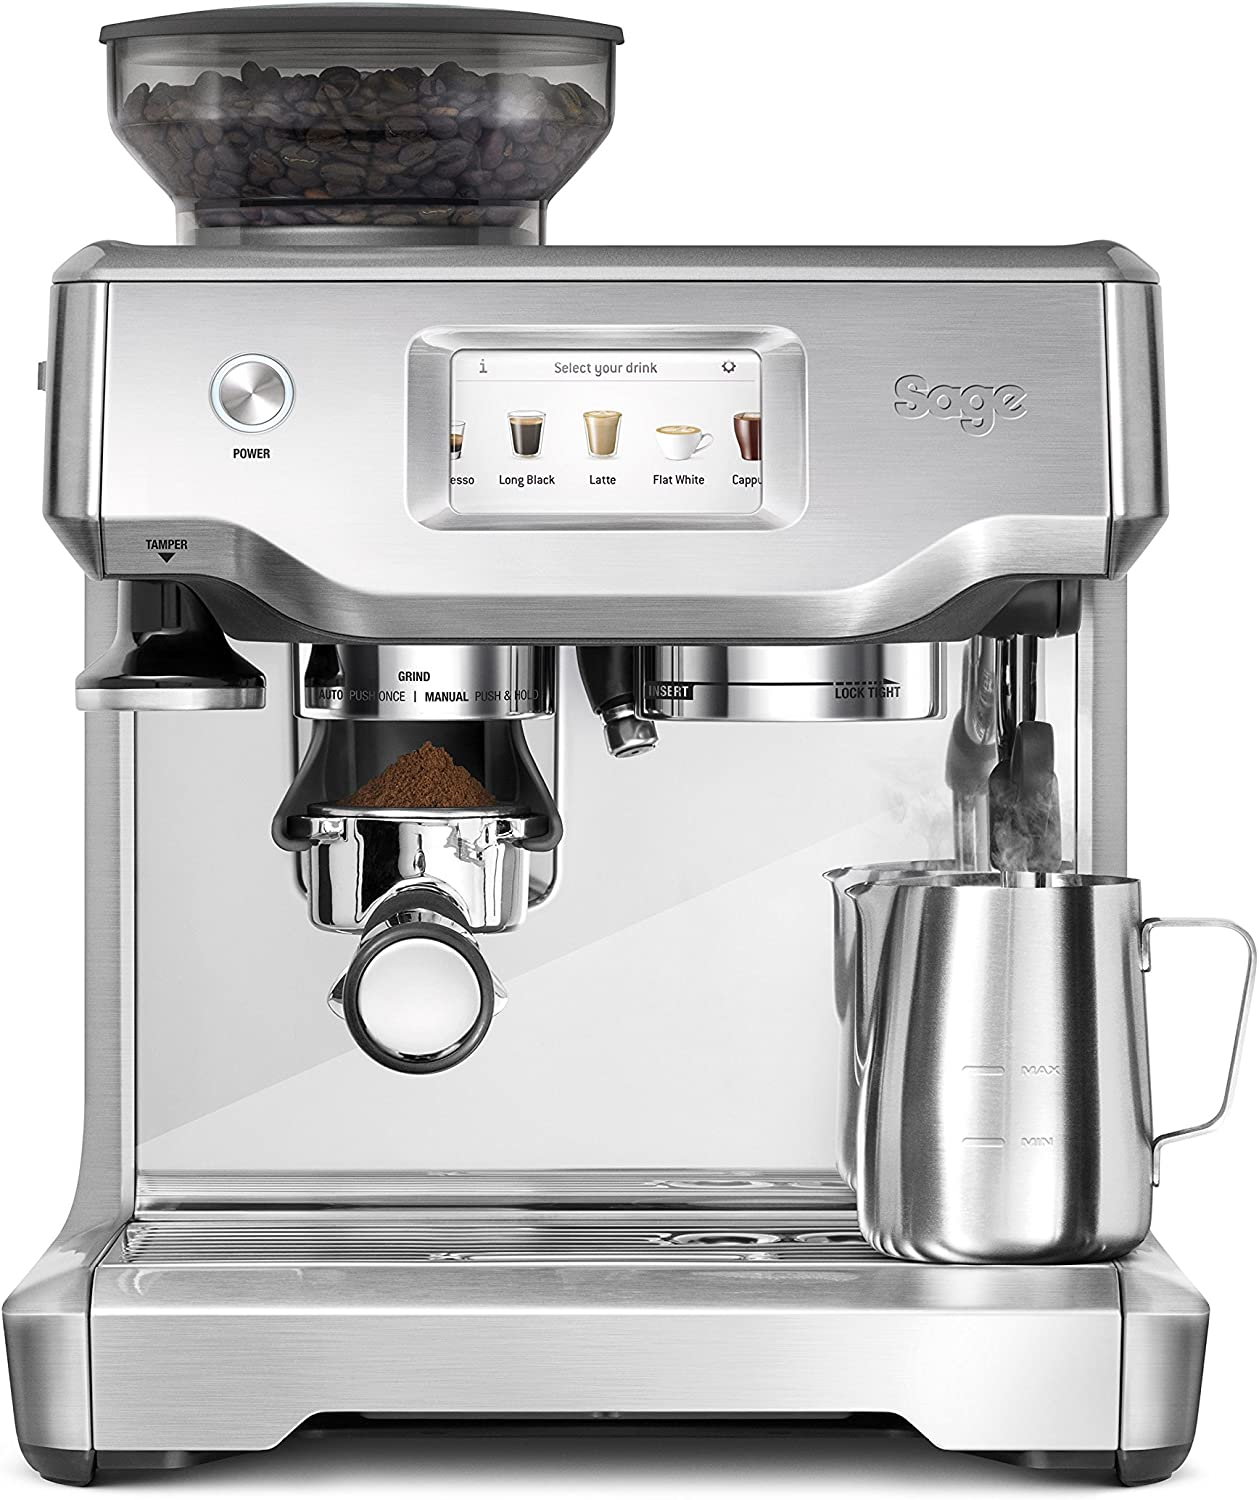 SAGE SES880BSS the Barista Touch, Cafetera espresso, Cappuccinatore, 15 Bar, acero inoxidable: Amazon.es: Hogar